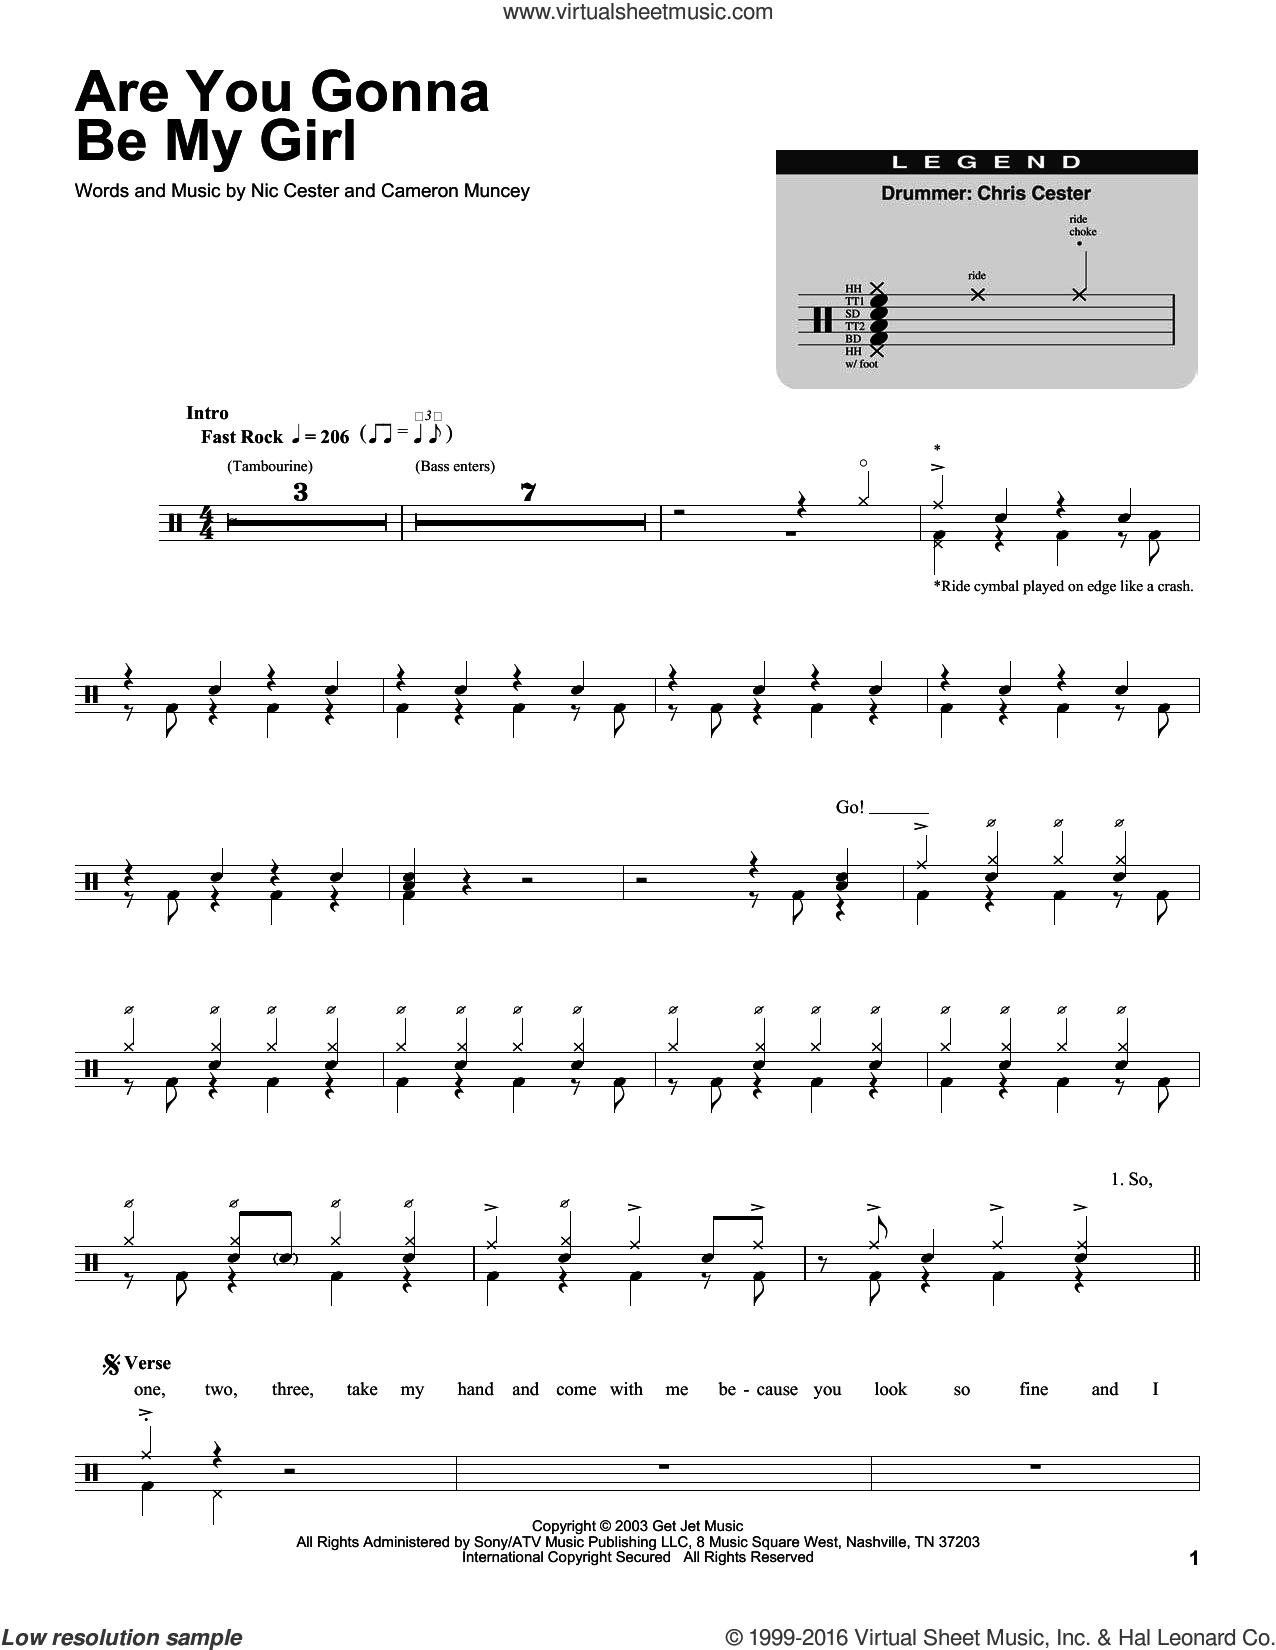 Are You Gonna Be My Girl sheet music for drums by Nic Cester and Cameron Muncey, intermediate skill level